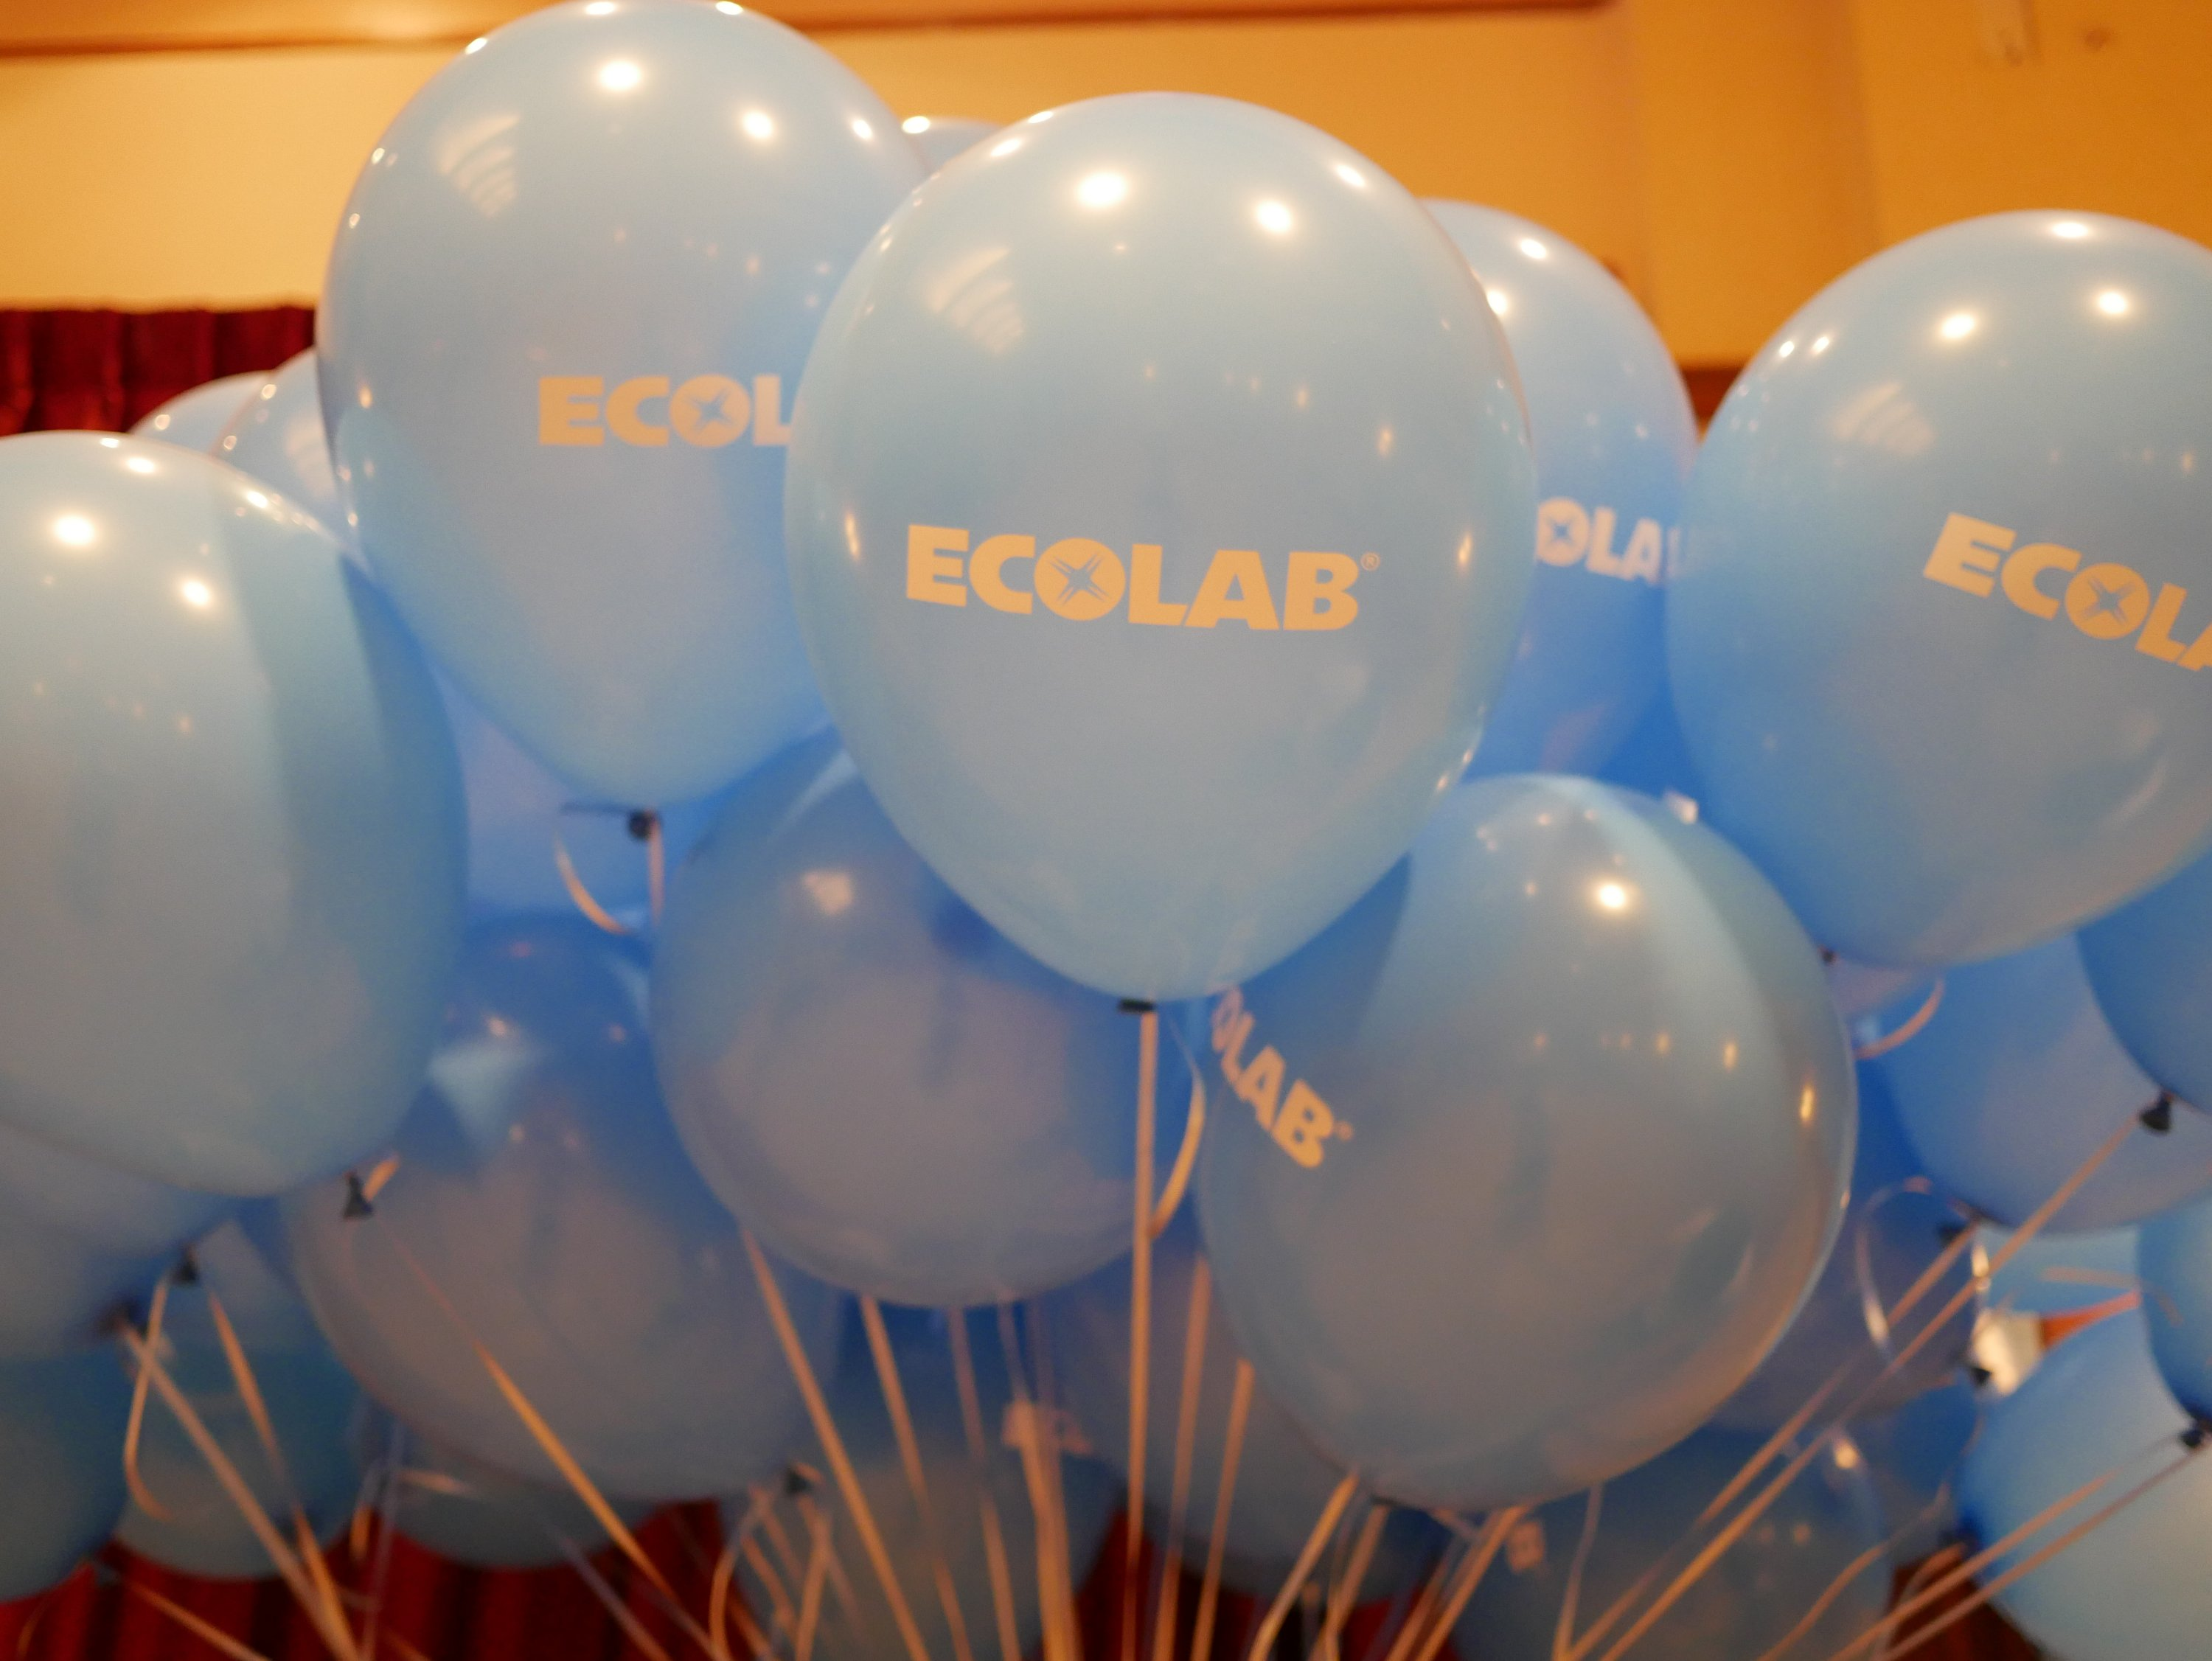 , Balloon Printing + Helium Inflation, Singapore Balloon Decoration Services - Balloon Workshop and Balloon Sculpting